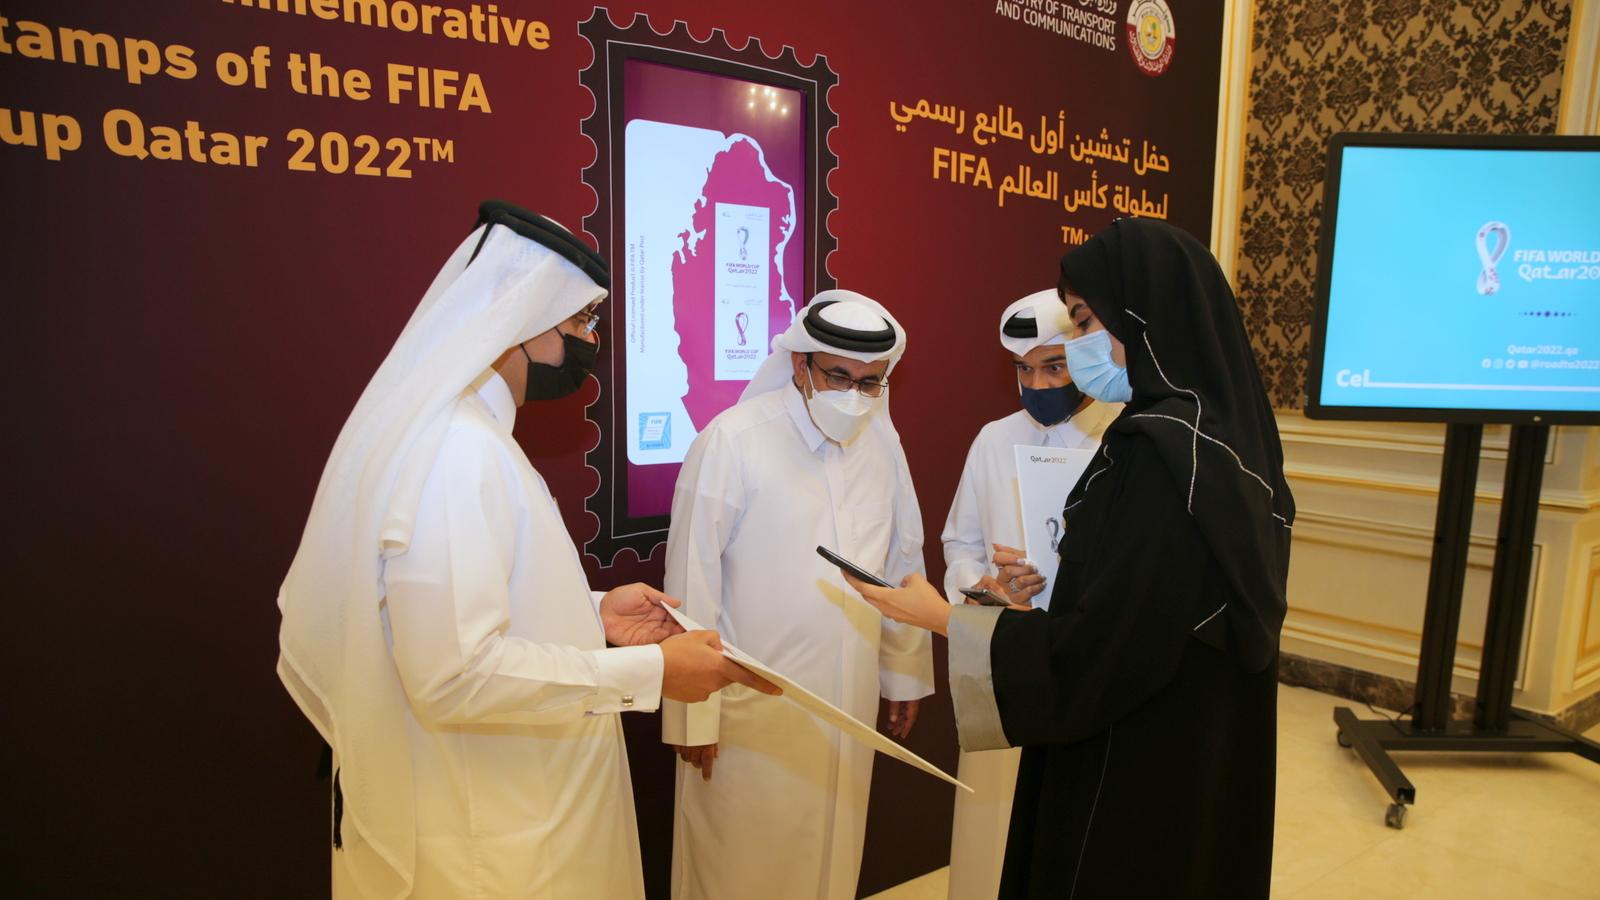 Qatar Post launch the official commemorative Qatari stamp of the FIFA World Cup Qatar 2022